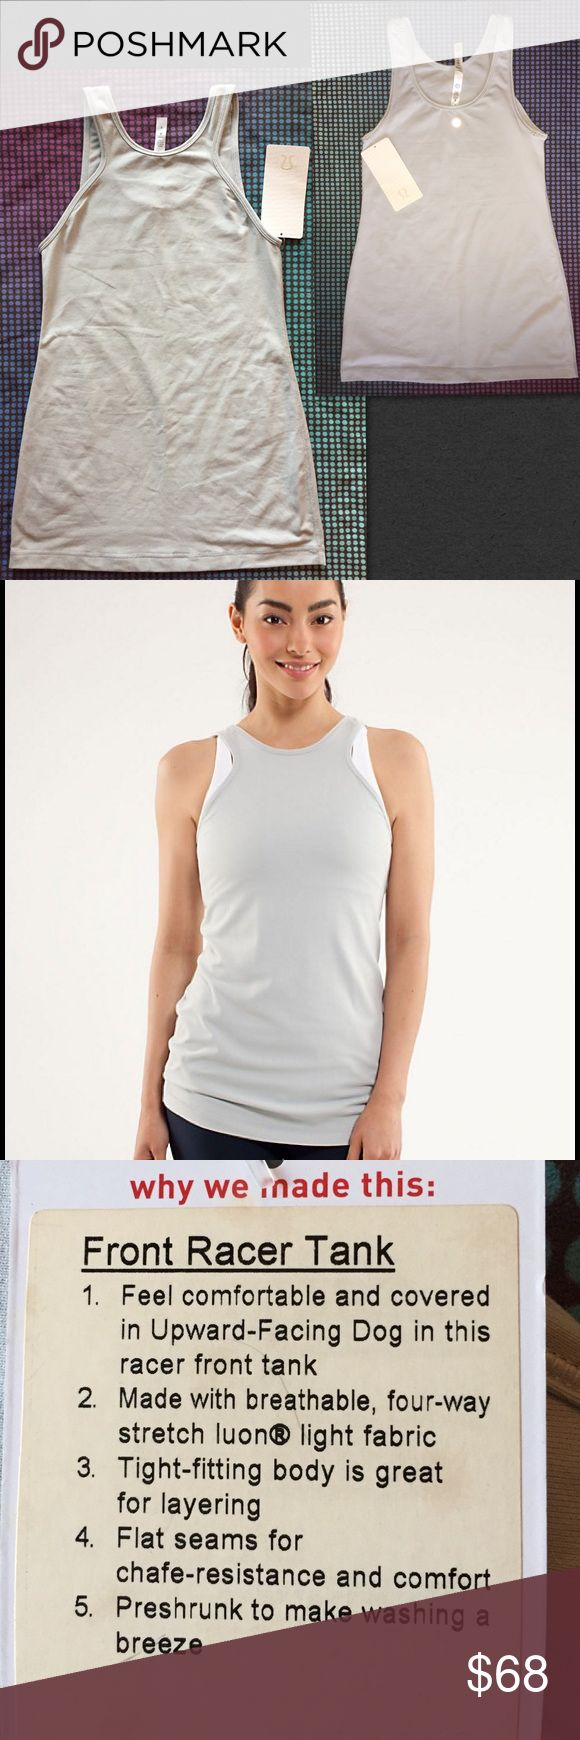 Online color invert picture - Nwt Lululemon Front Racer Tank 6 Silver Covered Modesty In This Front Racer Tank Made From